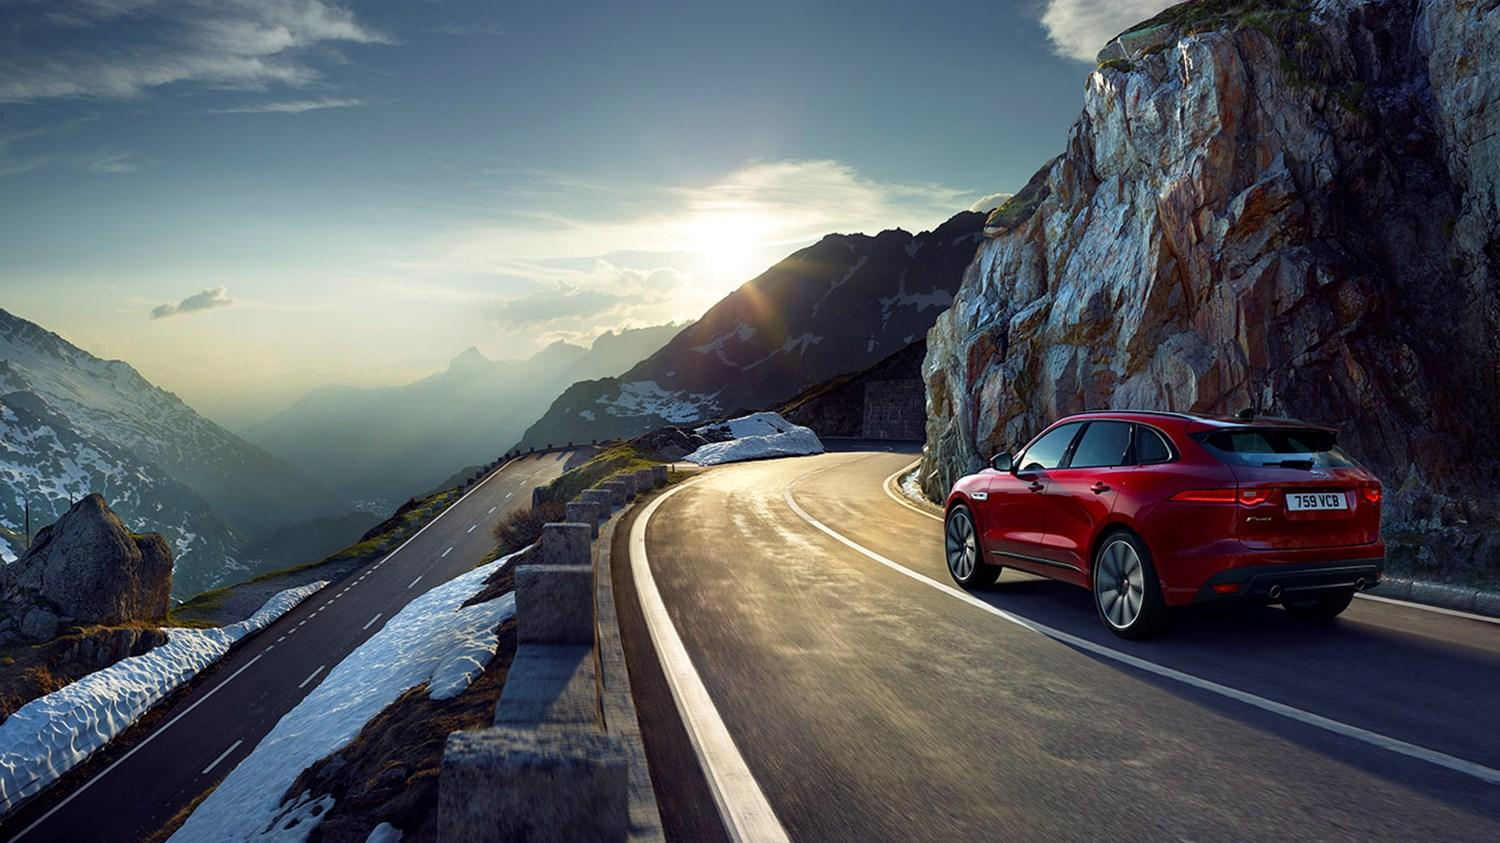 Red Jaguar E-Pace driving a mountain road